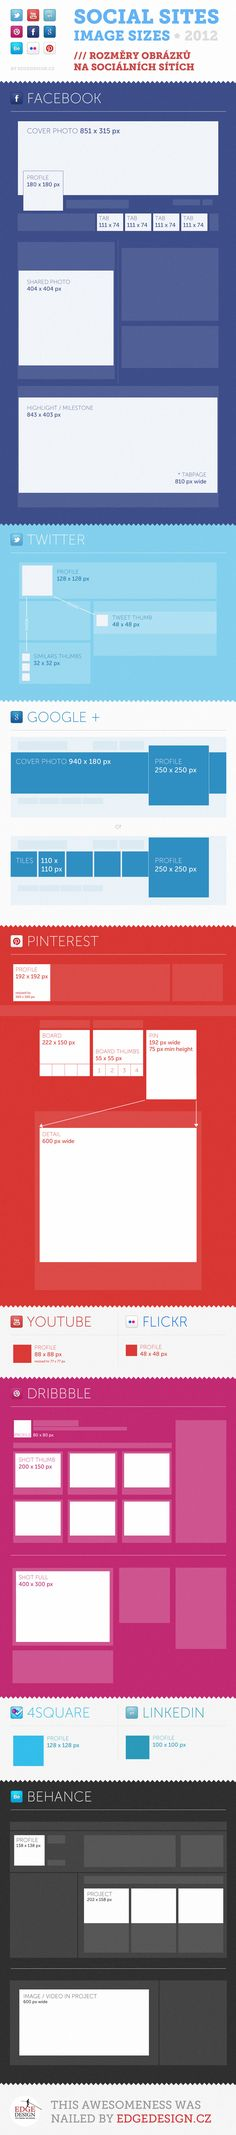 Image dimensions on social networks (facebook, twitter, google+, pinterest, youtube, flickr)